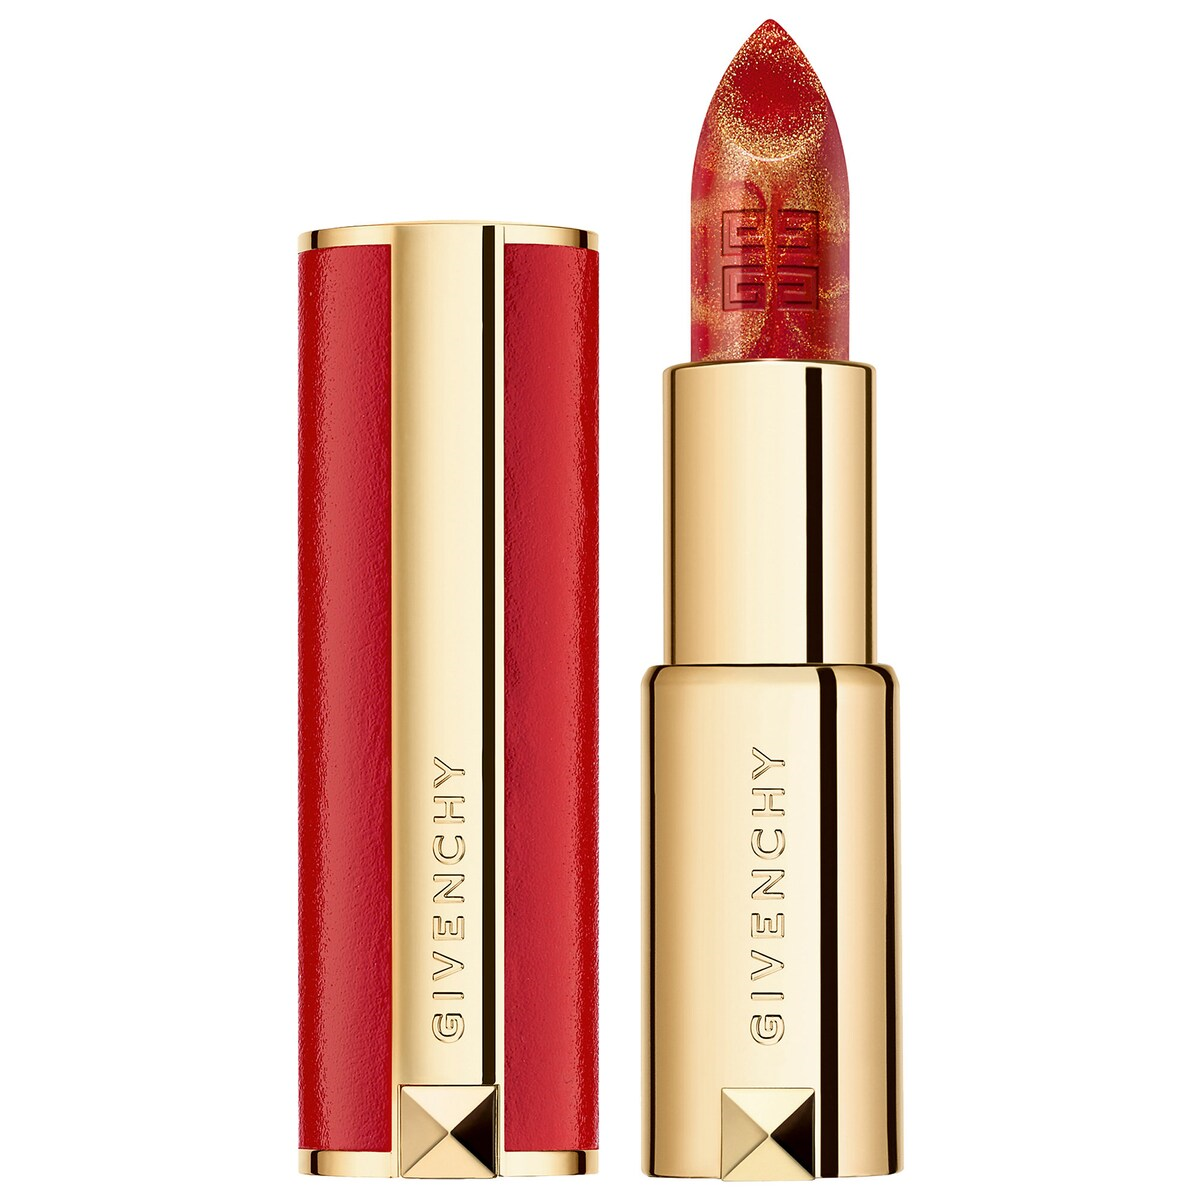 Givenchy Lunar New Year Edition Le Rouge Lipstick